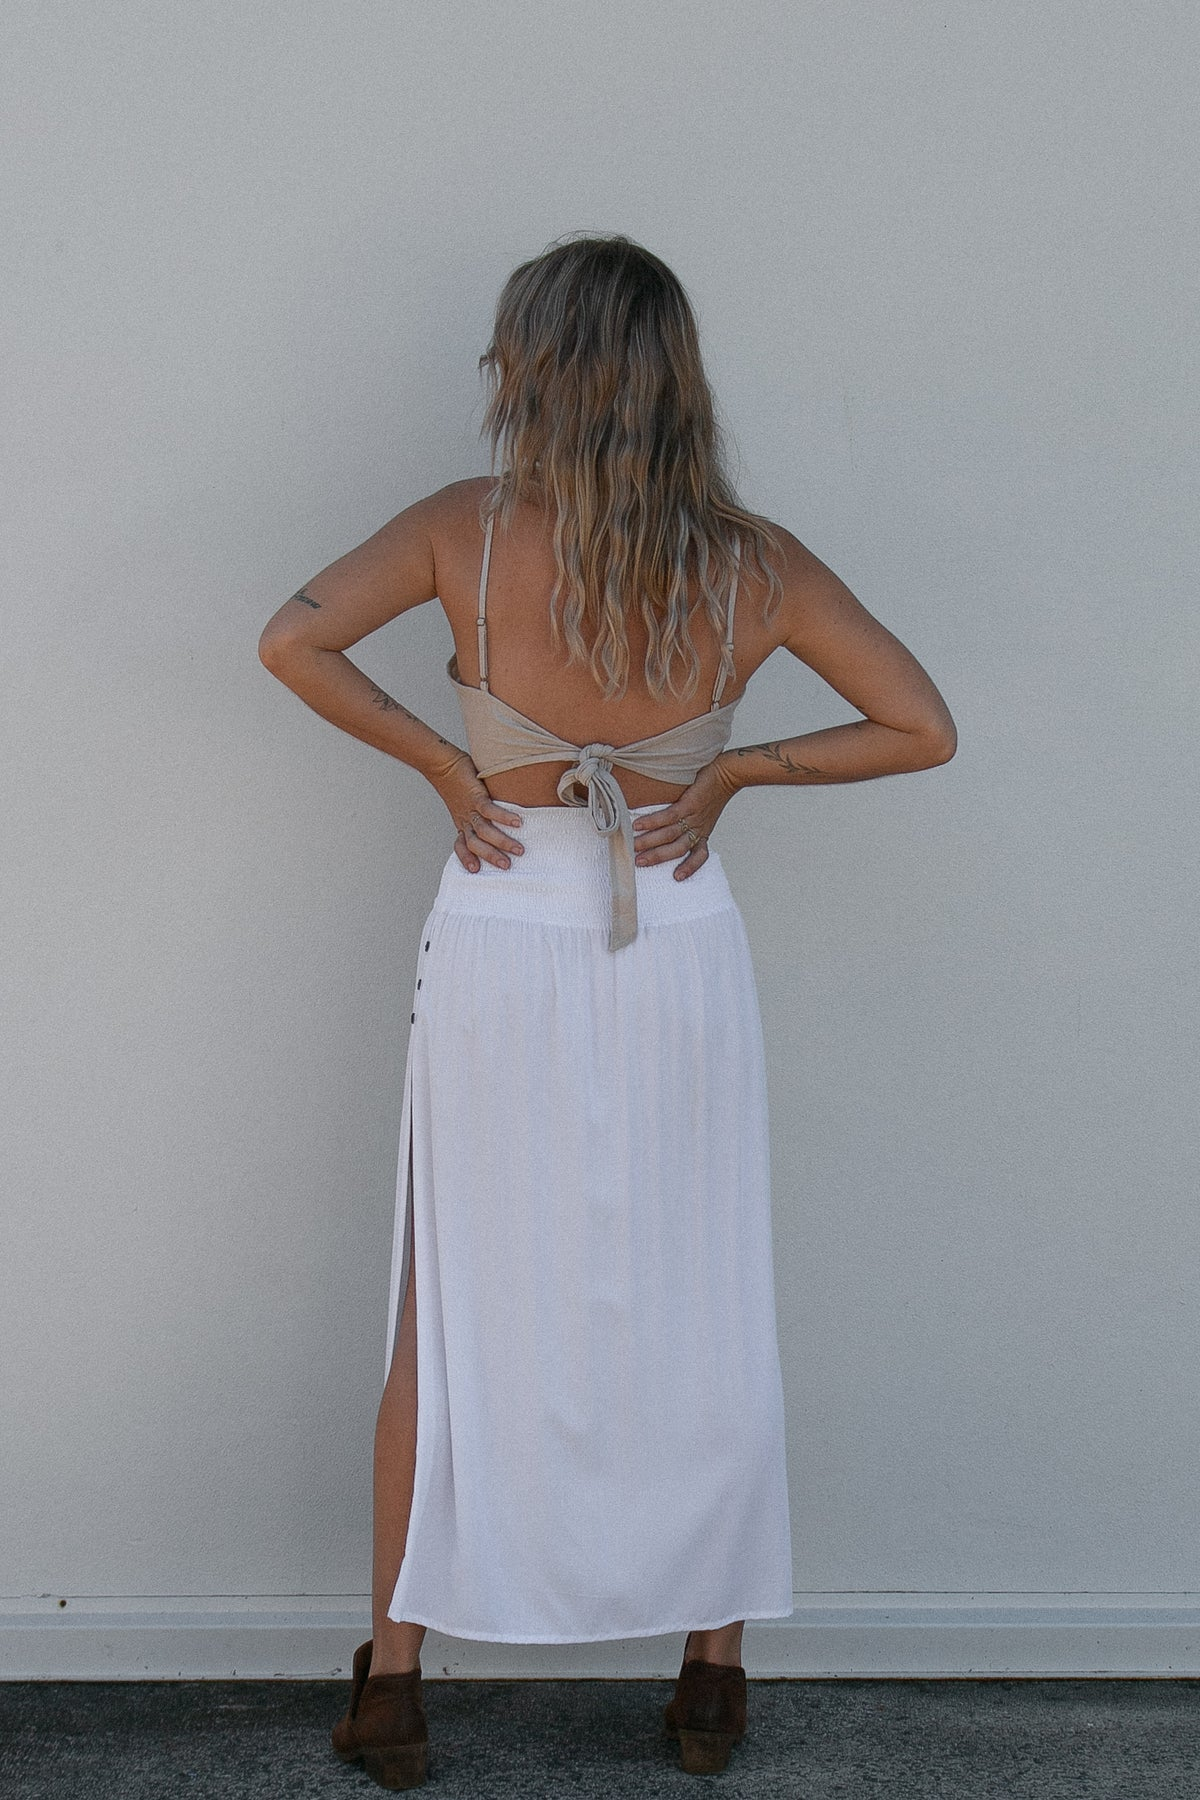 Graceland Skirt in White at Dreamers & Drifters